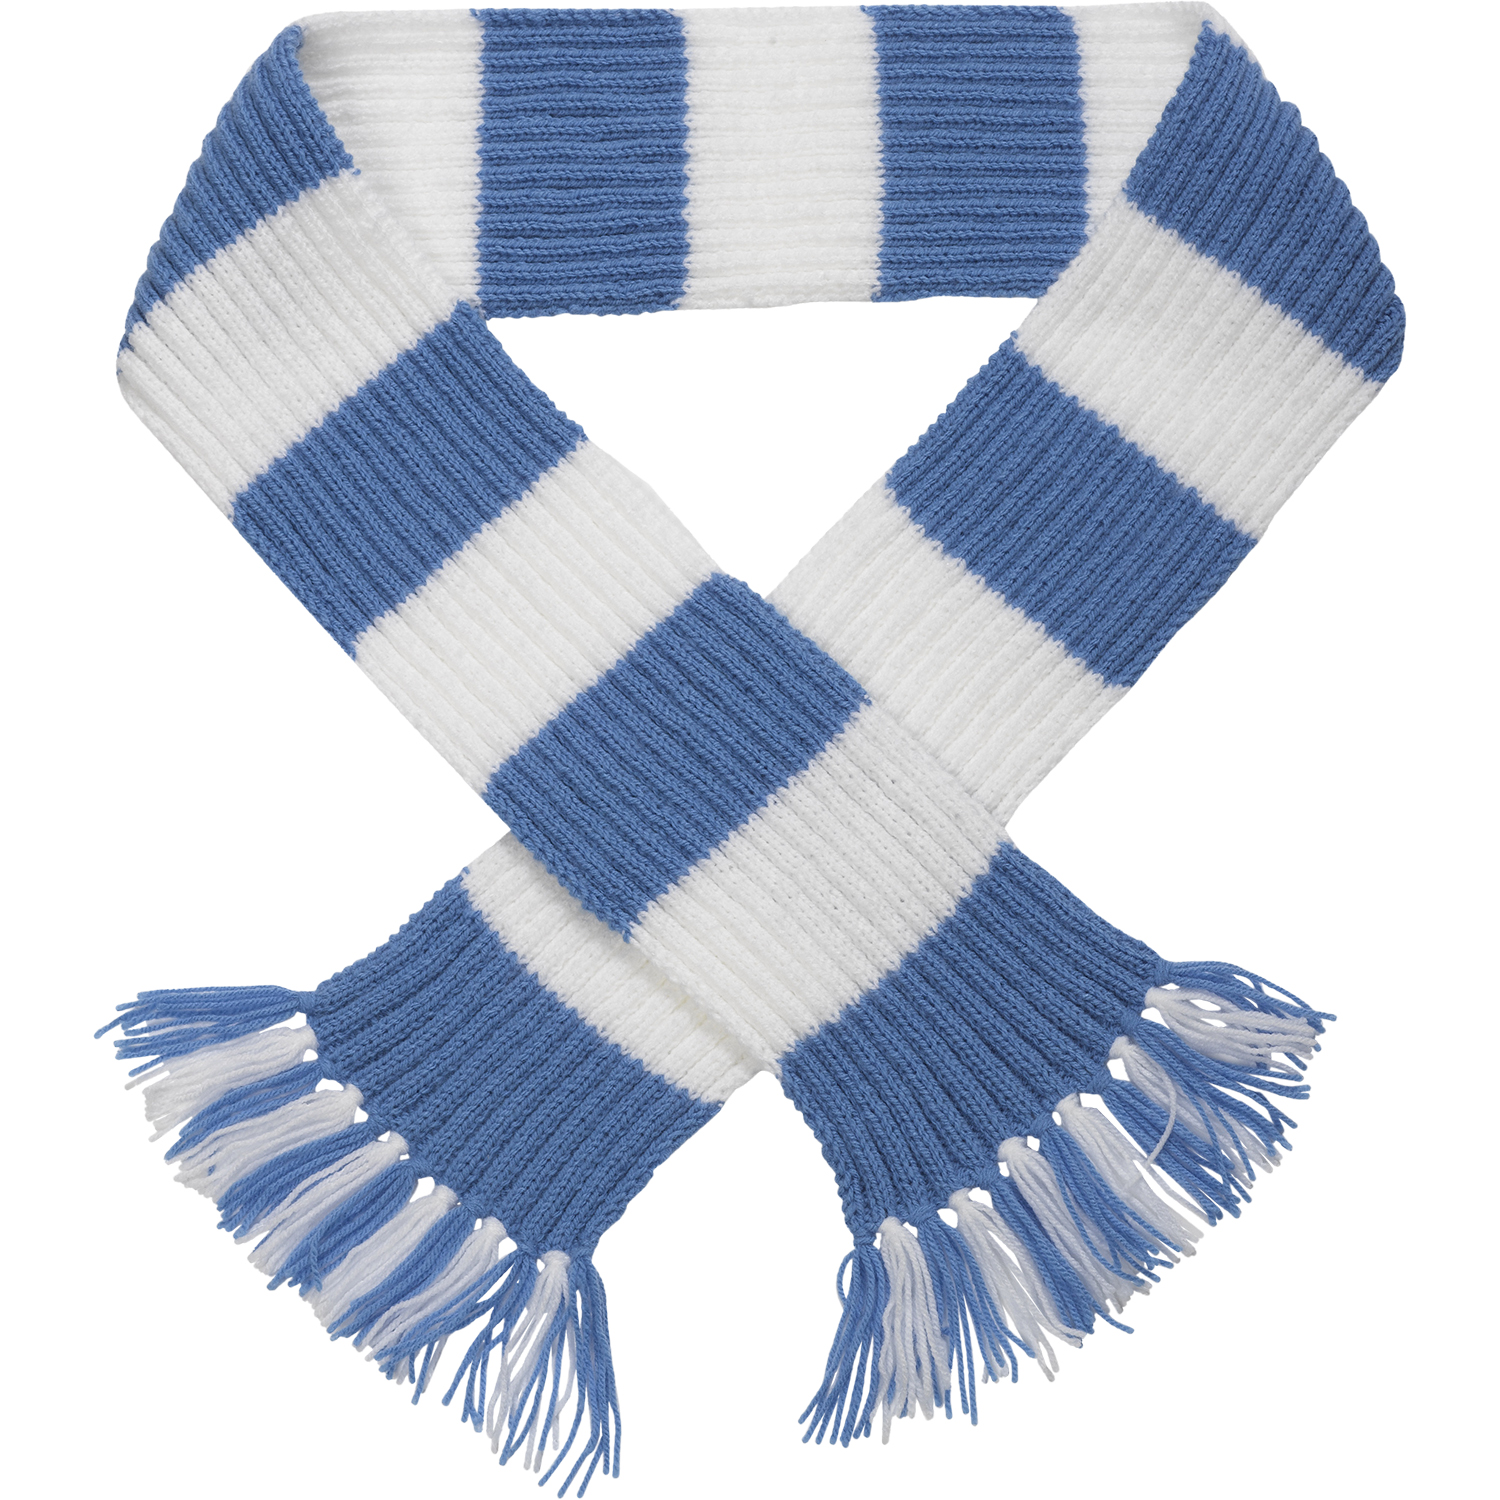 Rugby Football Striped Scarf Knitting Pattern Wool Sports Team